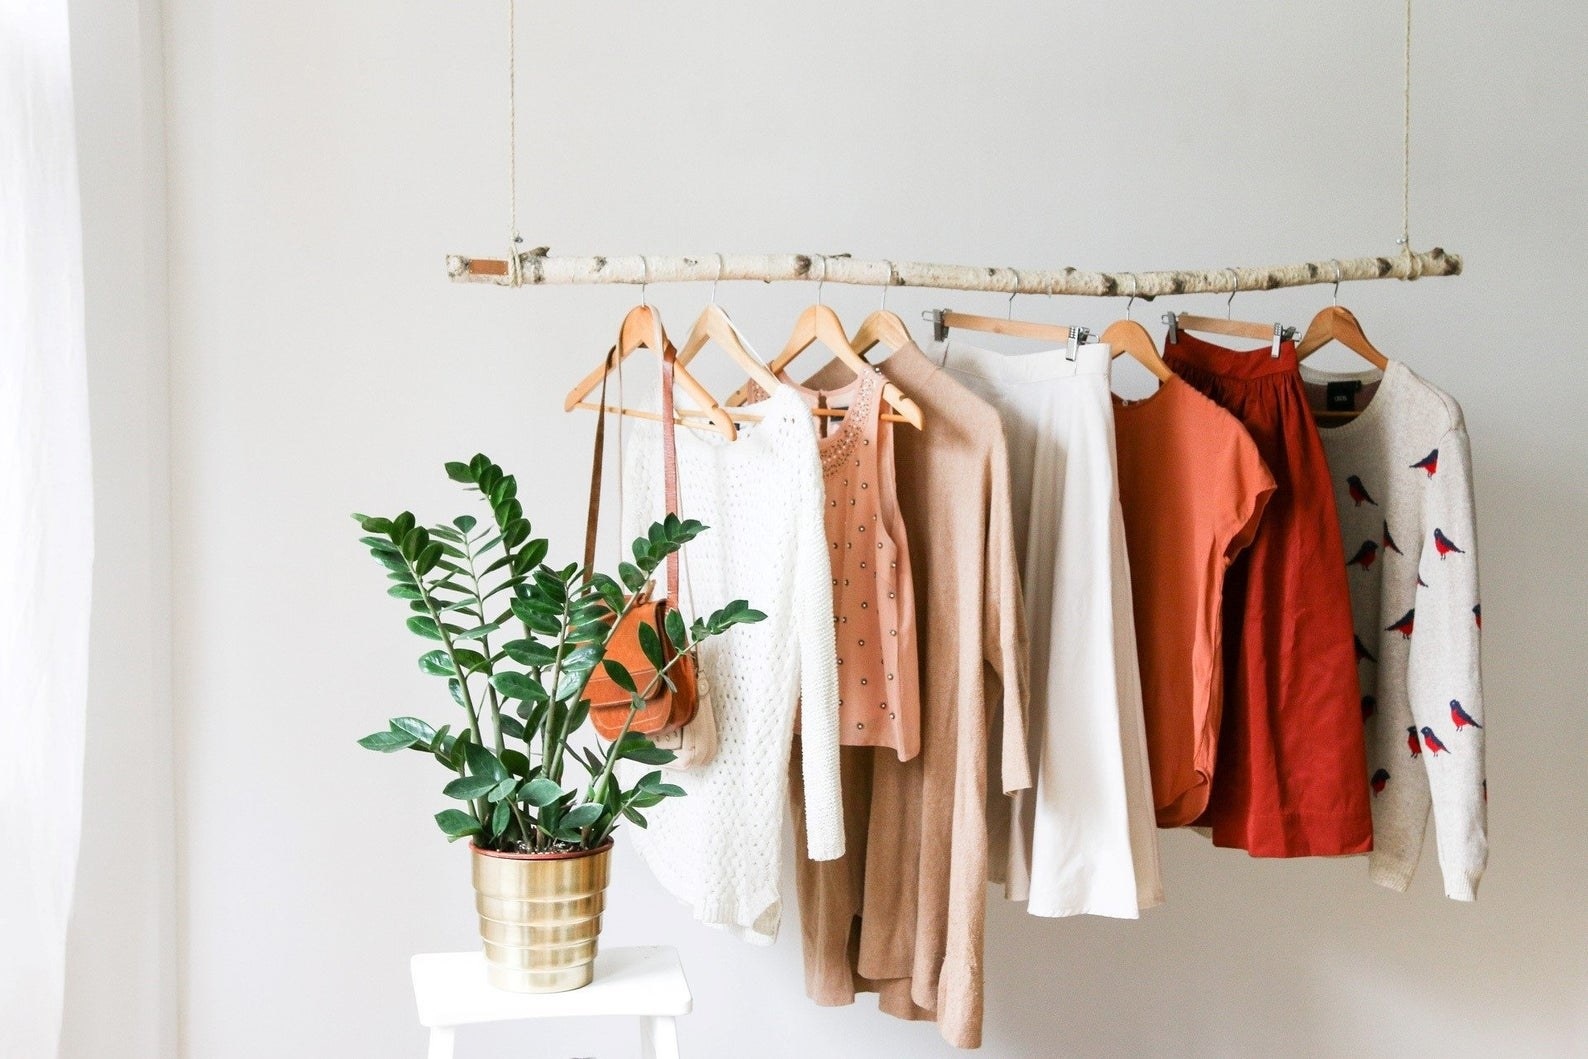 Clothes hanging from the birch branch clothing rack